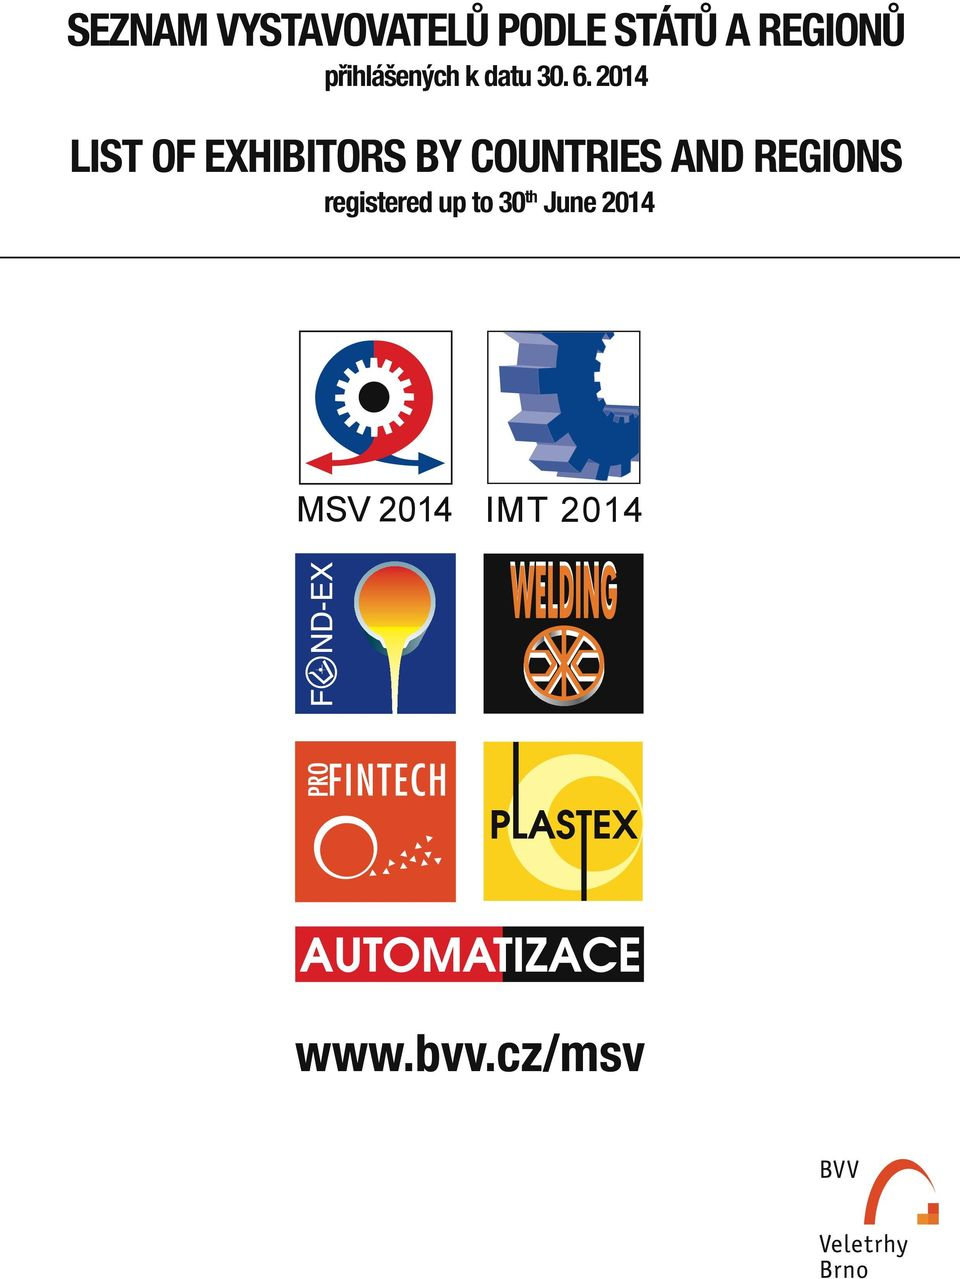 2014 list of exhibitors by countries and regions